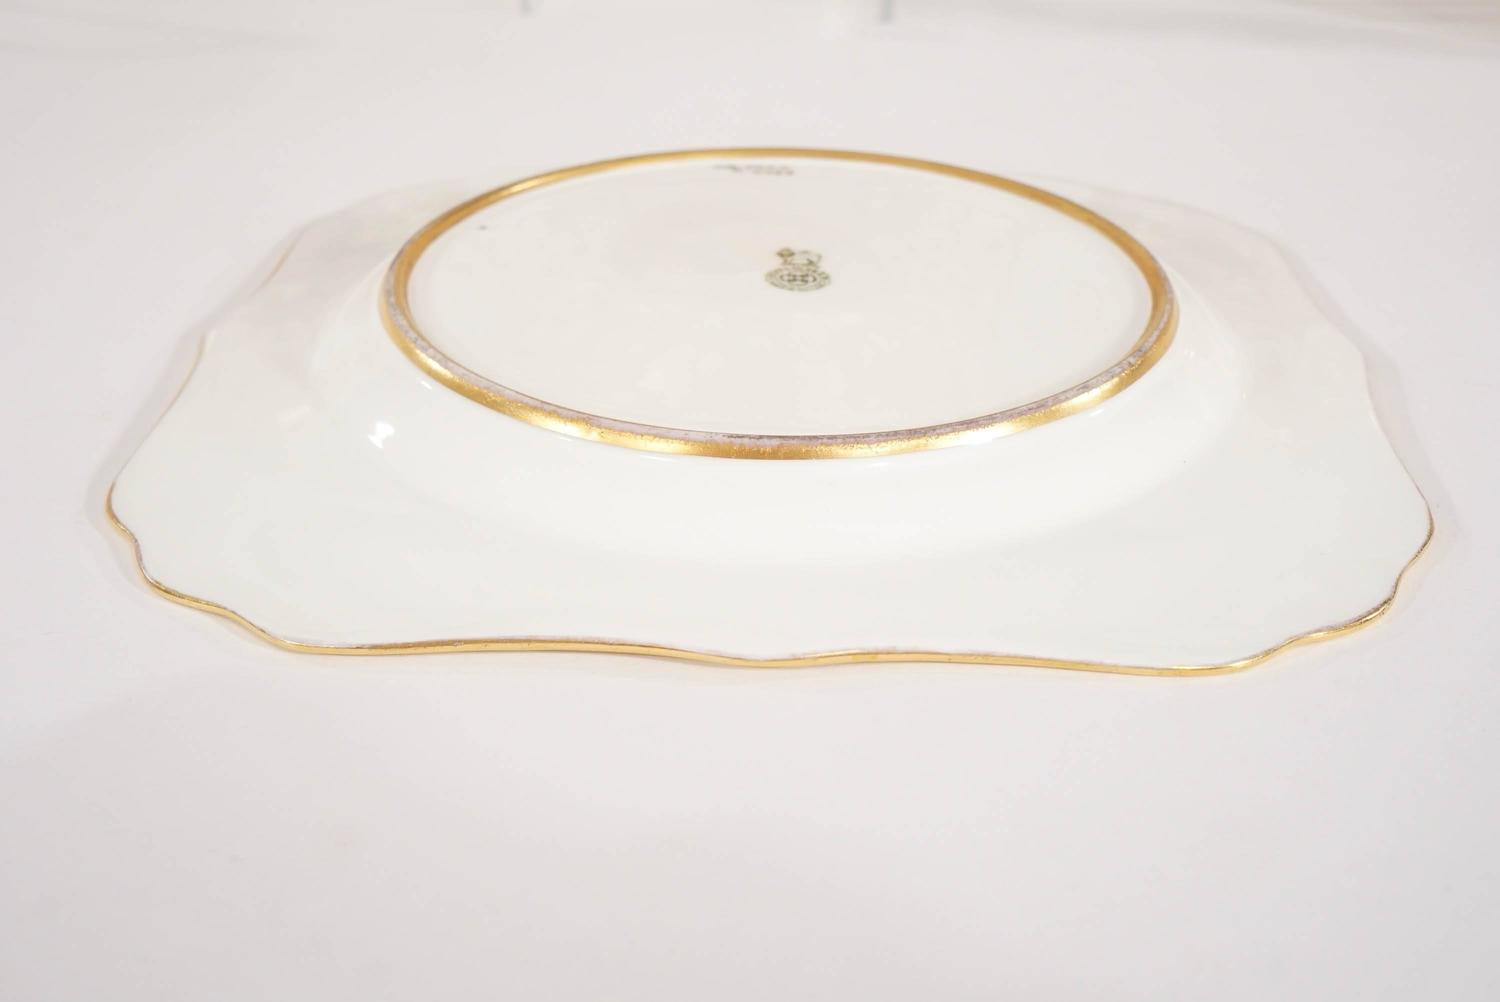 square dessert plates signed curnock raised gold for sale at 1stdibs